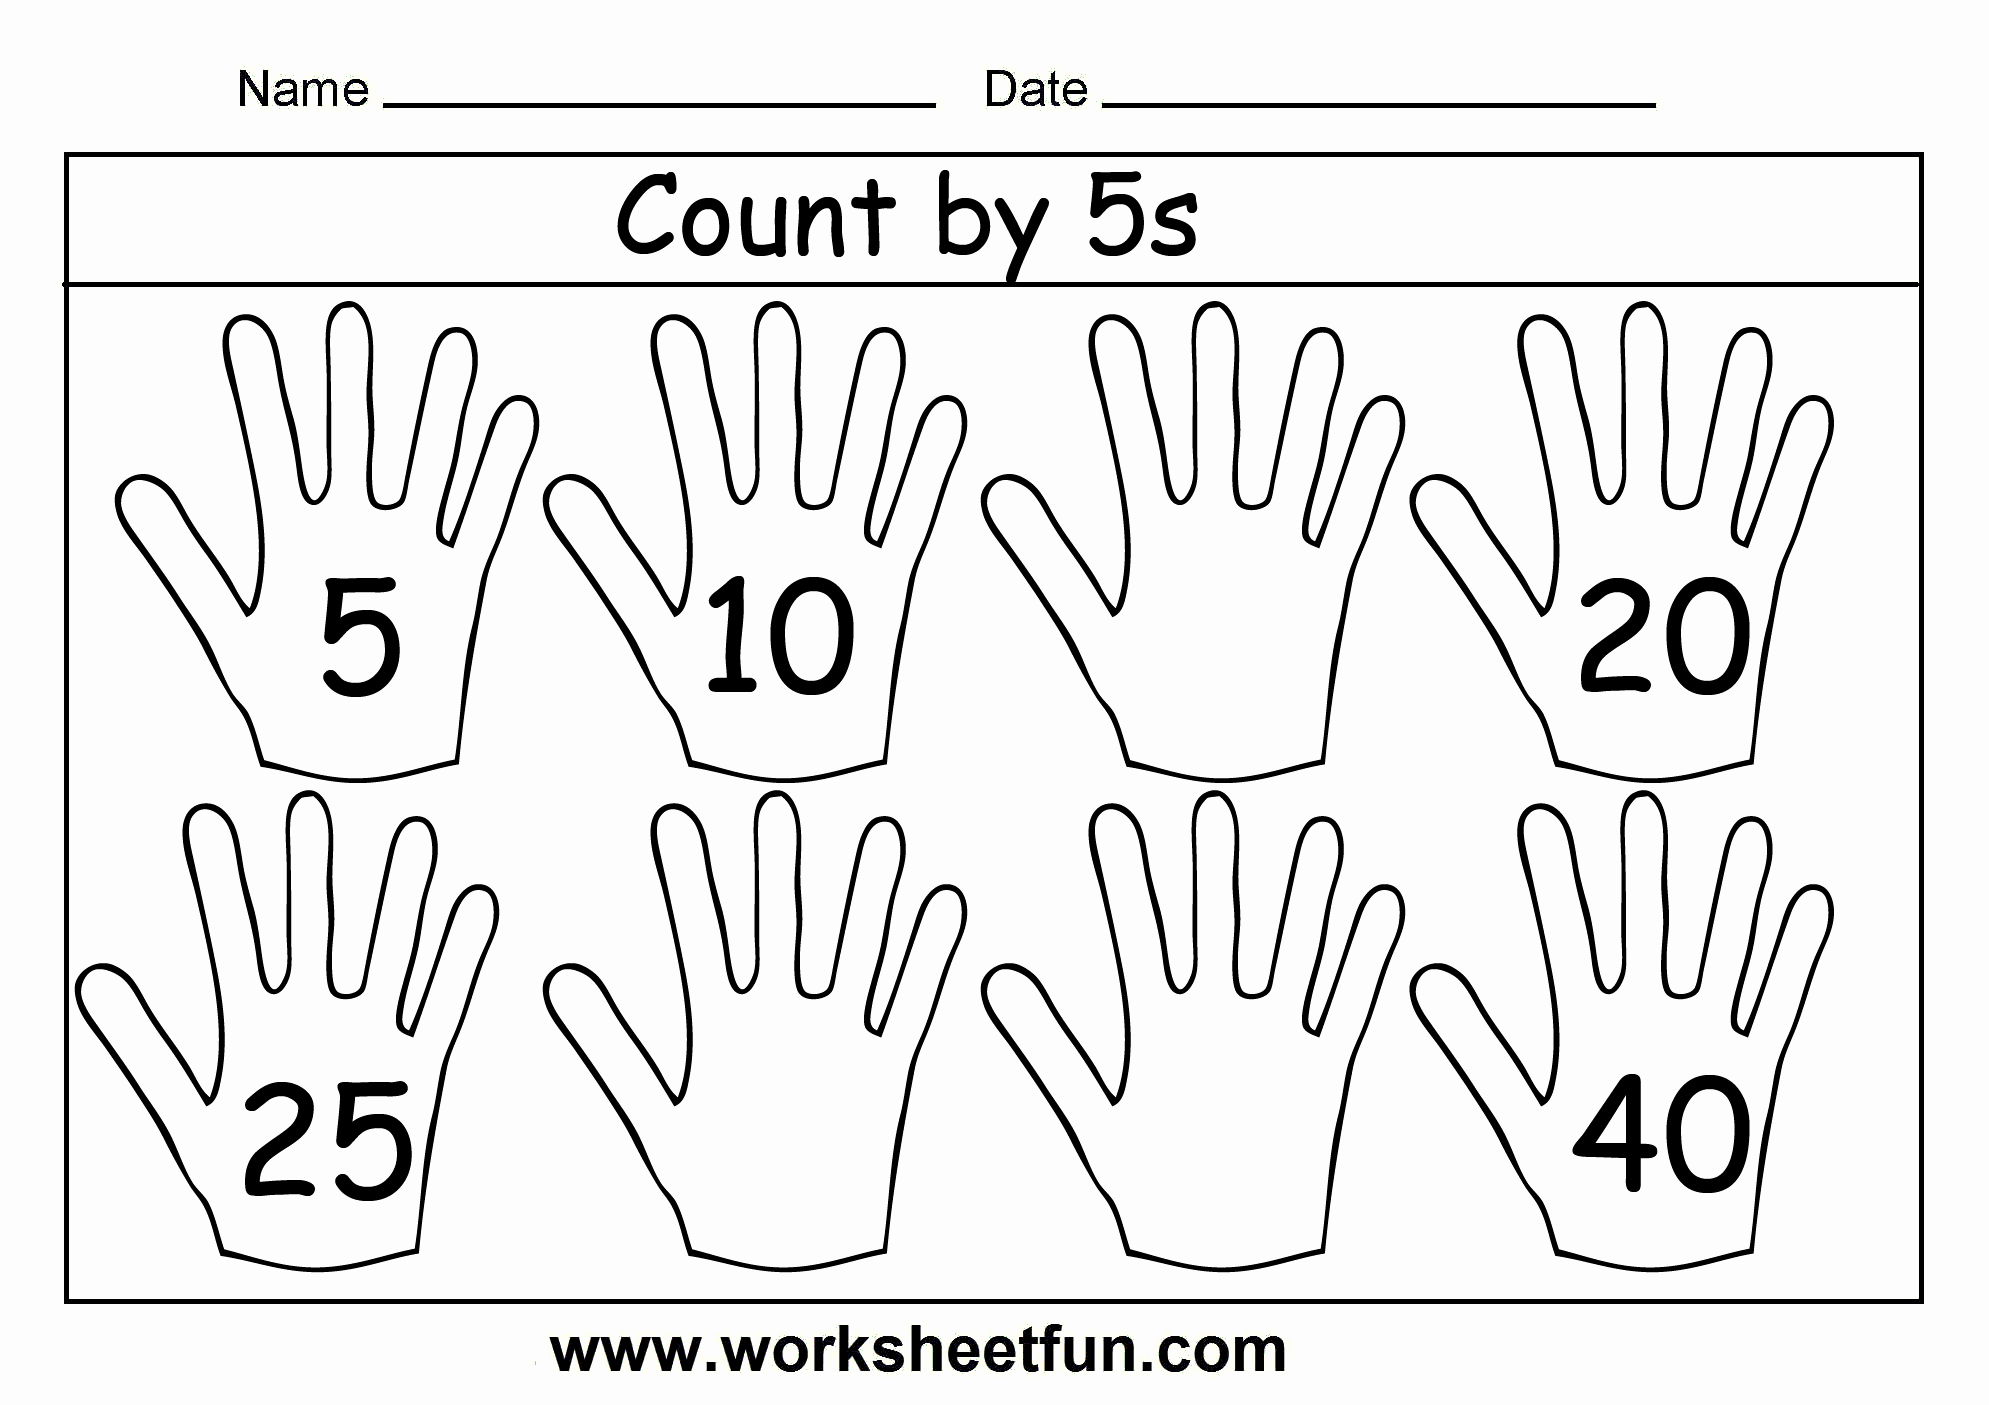 Counting In 5s Worksheet Luxury Count by 5s – 3 Worksheets Free Printable Worksheets